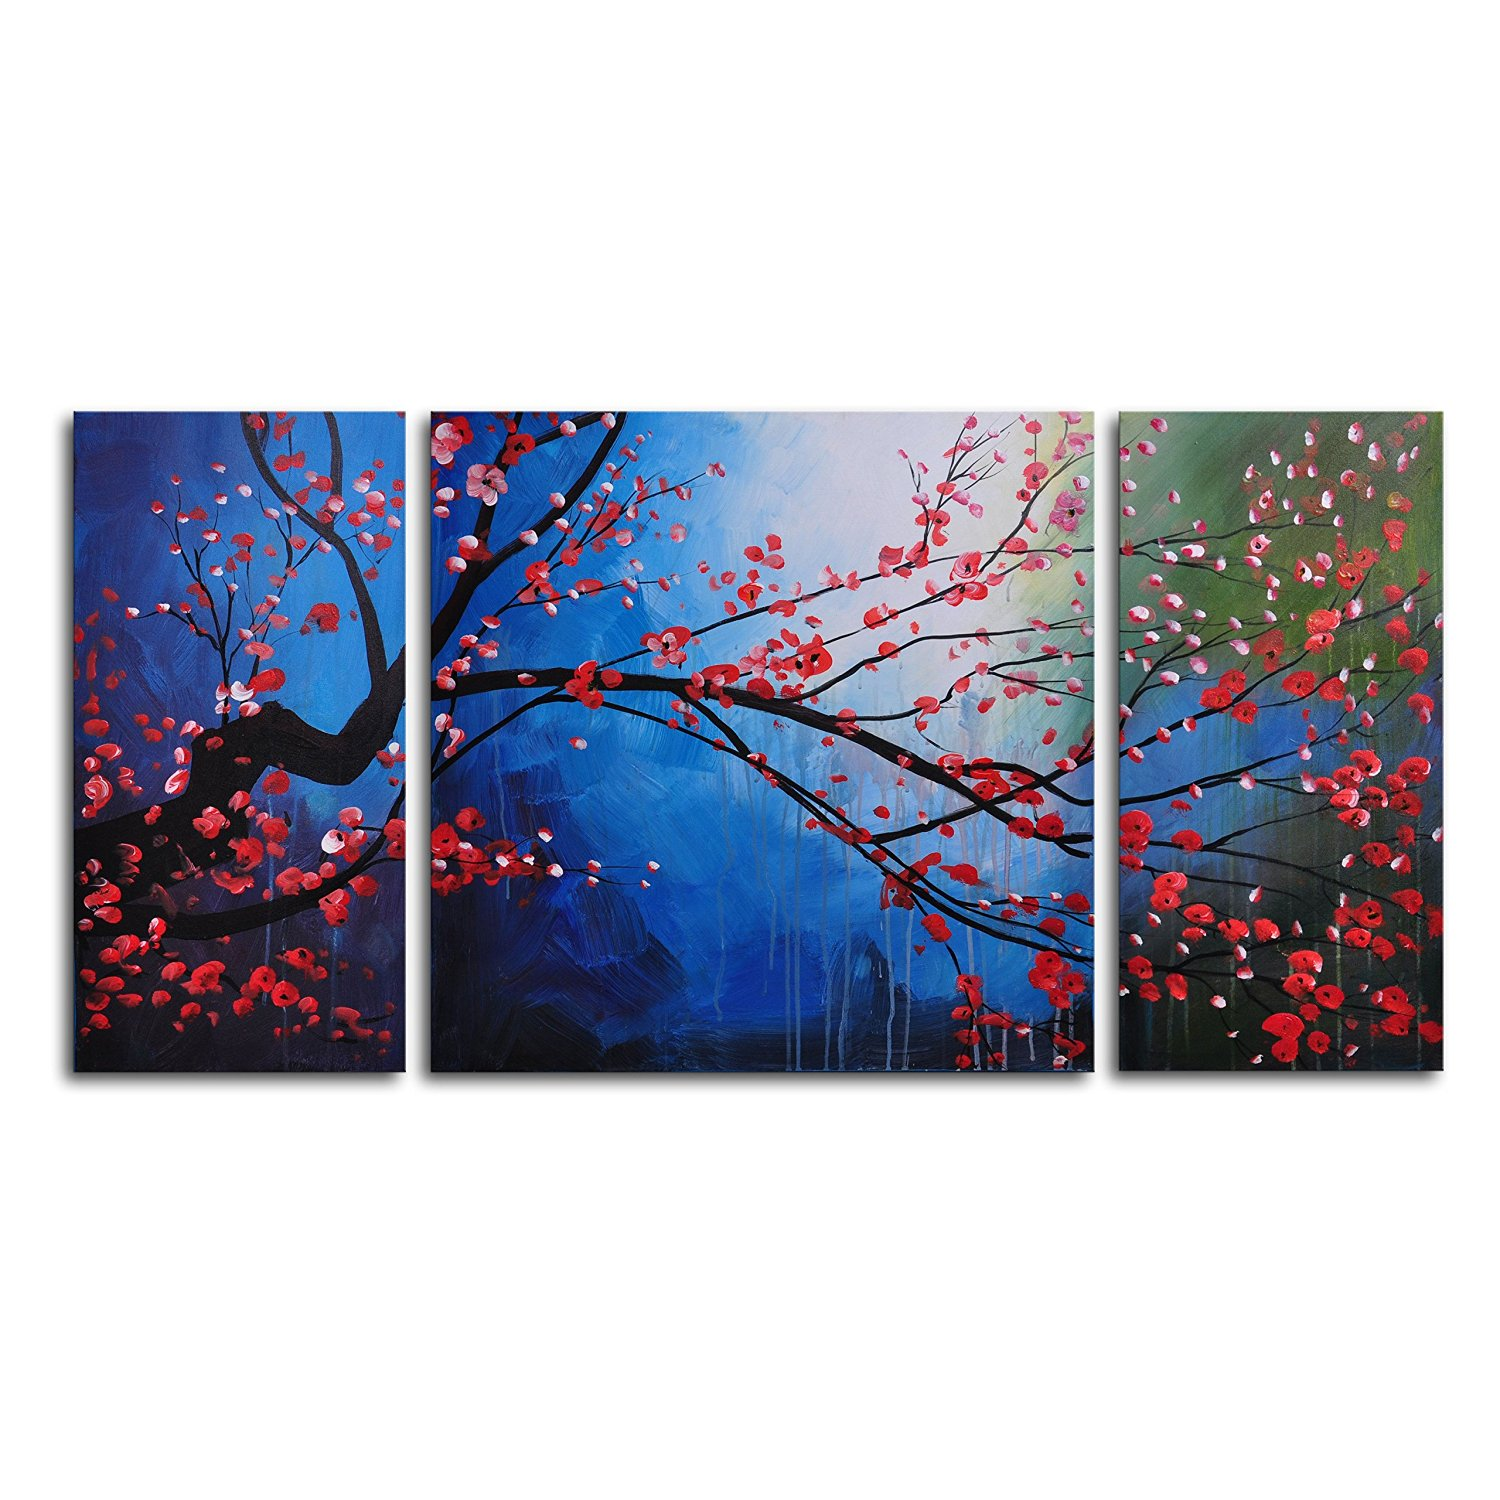 TJie Art Hand Painted Mordern Oil Paintings Stormy Cherry Tree 3, For indoor use 3-piece wall art in classic style, Hand-painted on canvas with high-quality oil, Nature theme in a mix of blue red and black, Dimensions: 48W x 24H in.